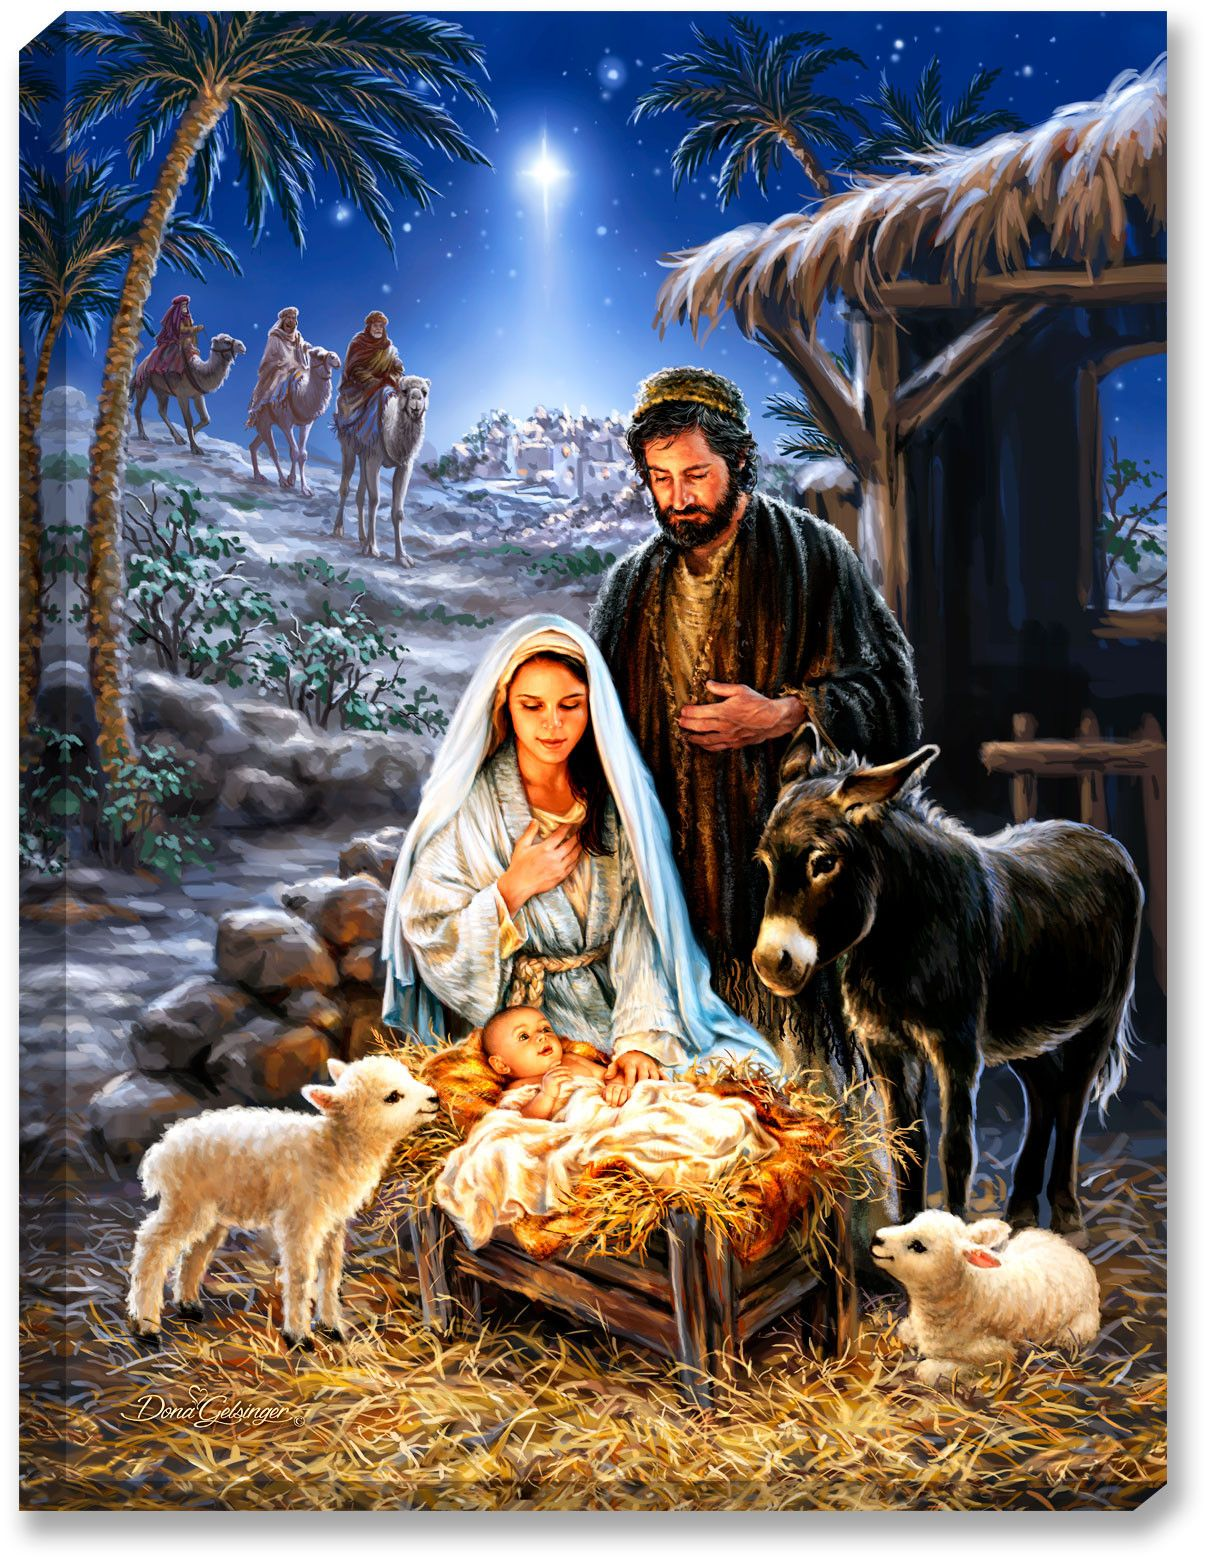 Beautiful Nativity Wallpaper : beautiful, nativity, wallpaper, Savior, Illuminated, Christmas, Paintings,, Nativity, Scene,